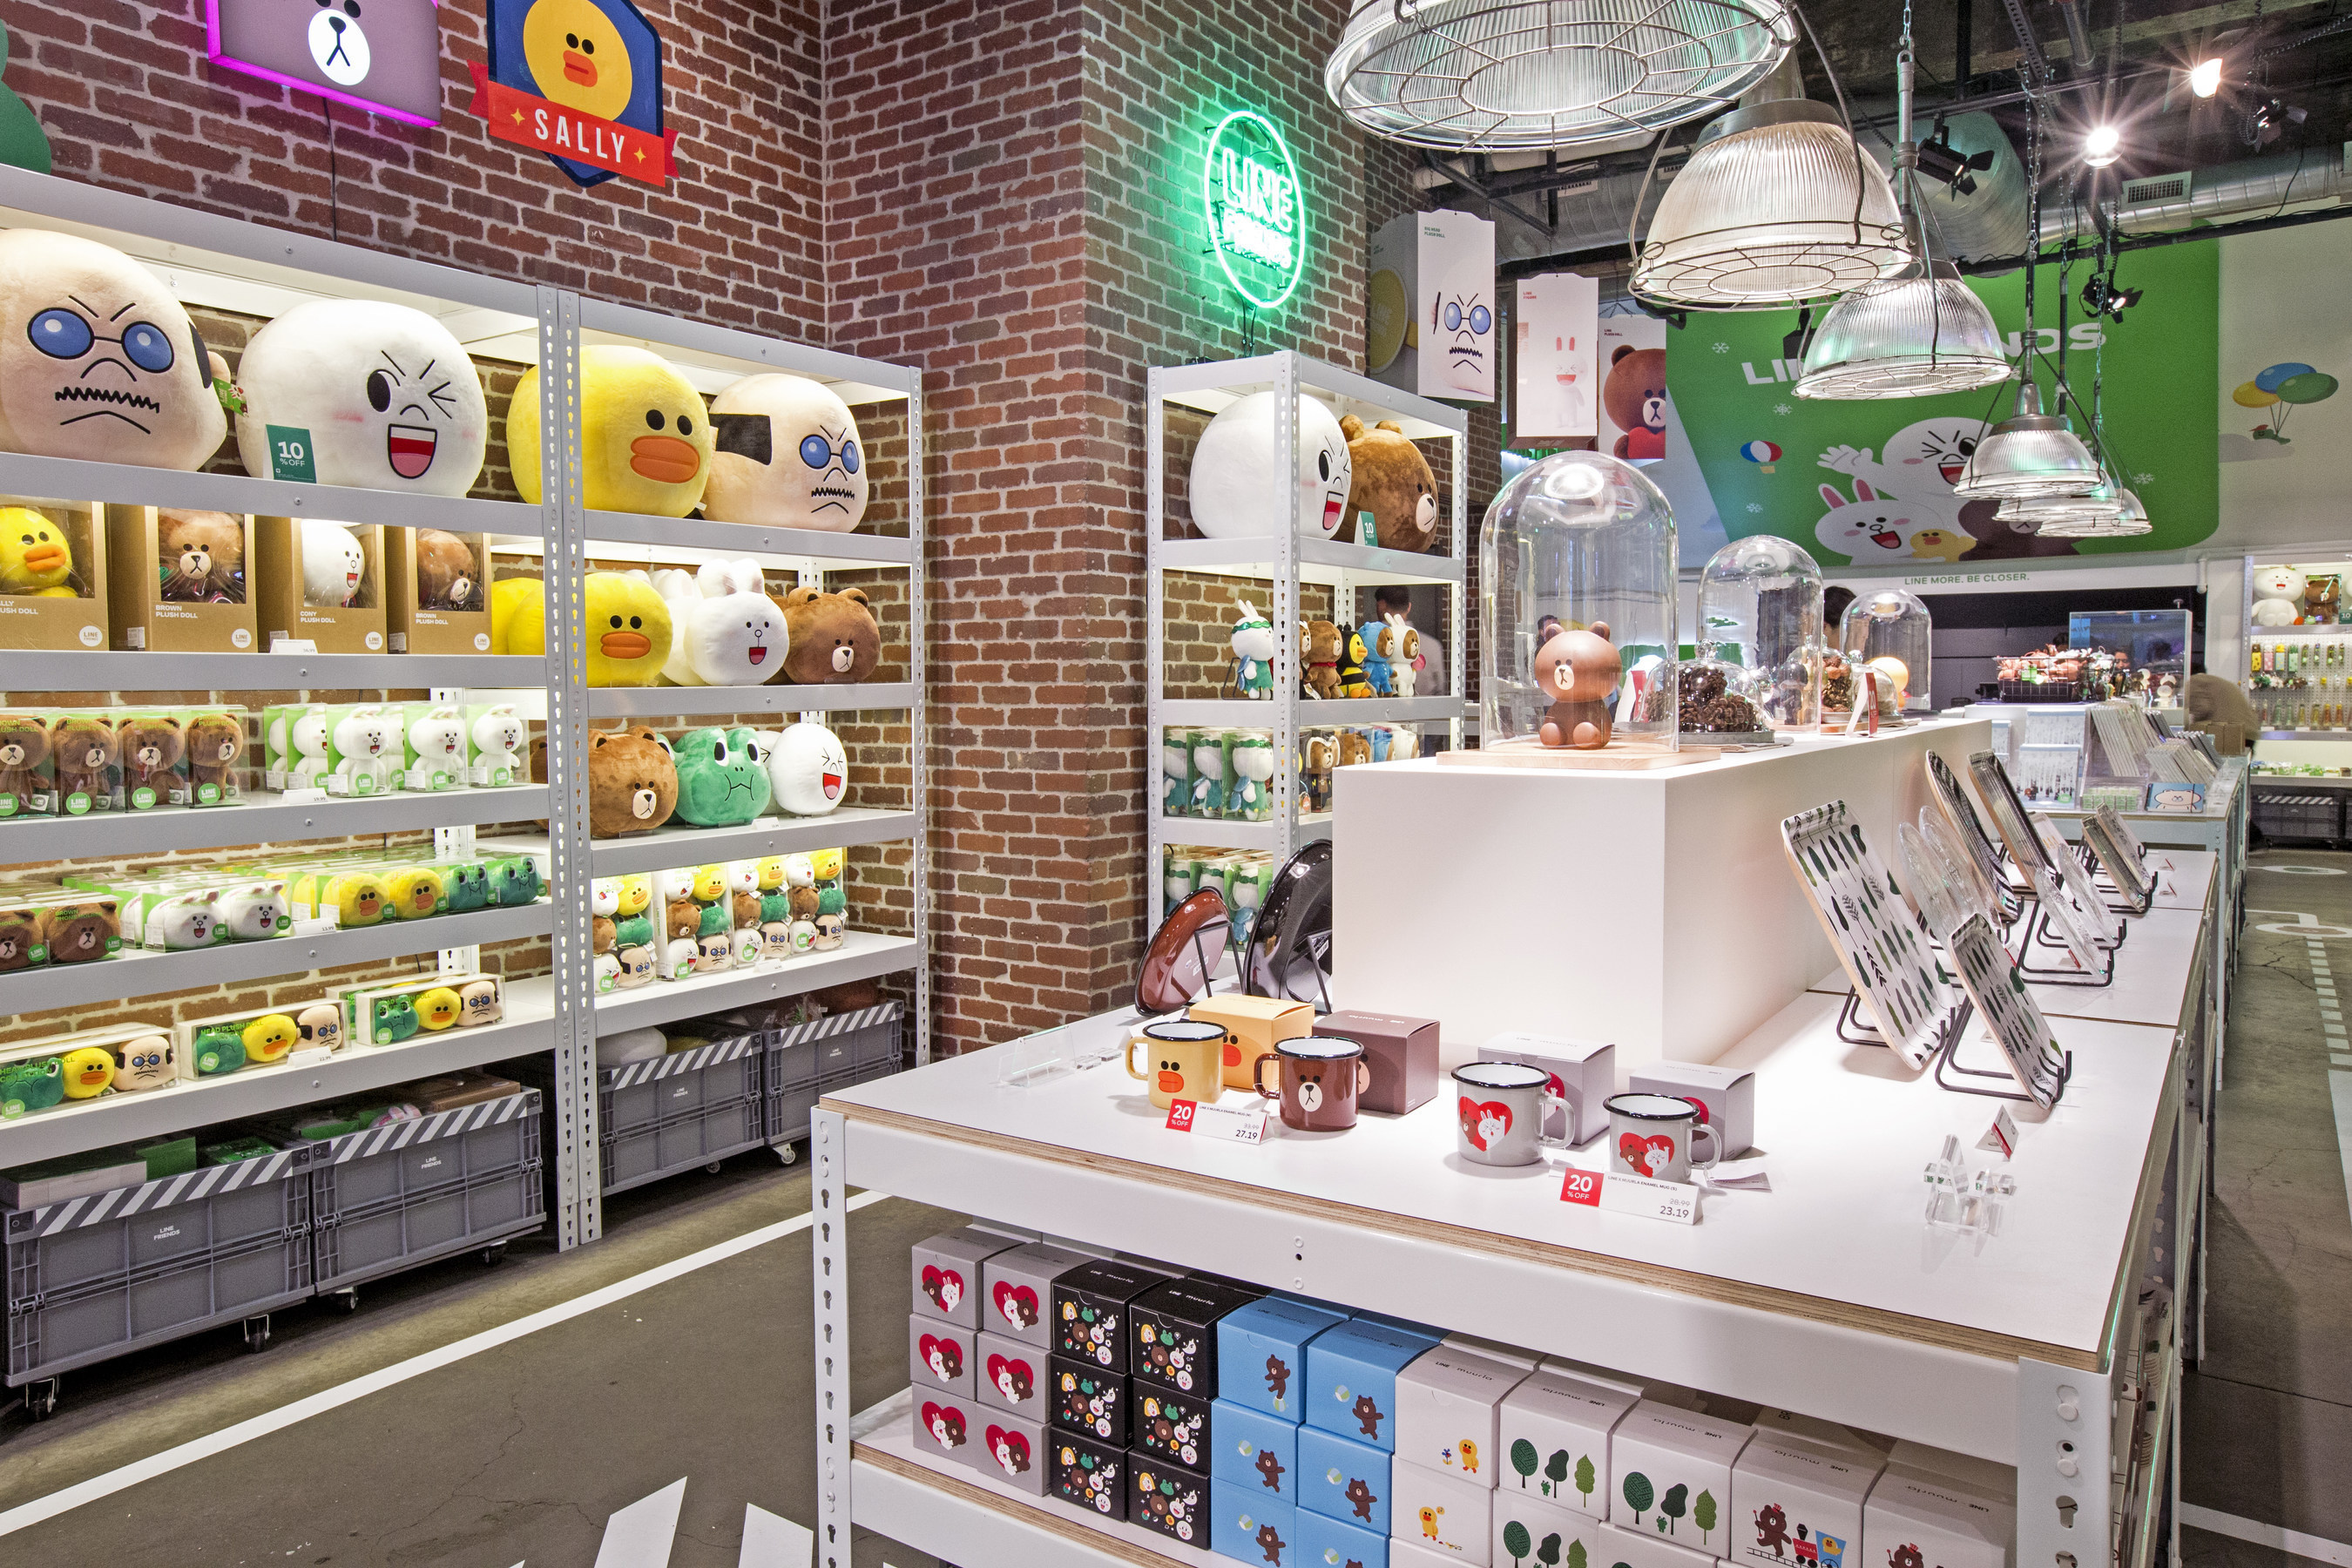 LINE FRIENDS in NEW YORK aims to bring the ultimate LINE experience for everyone to enjoy.